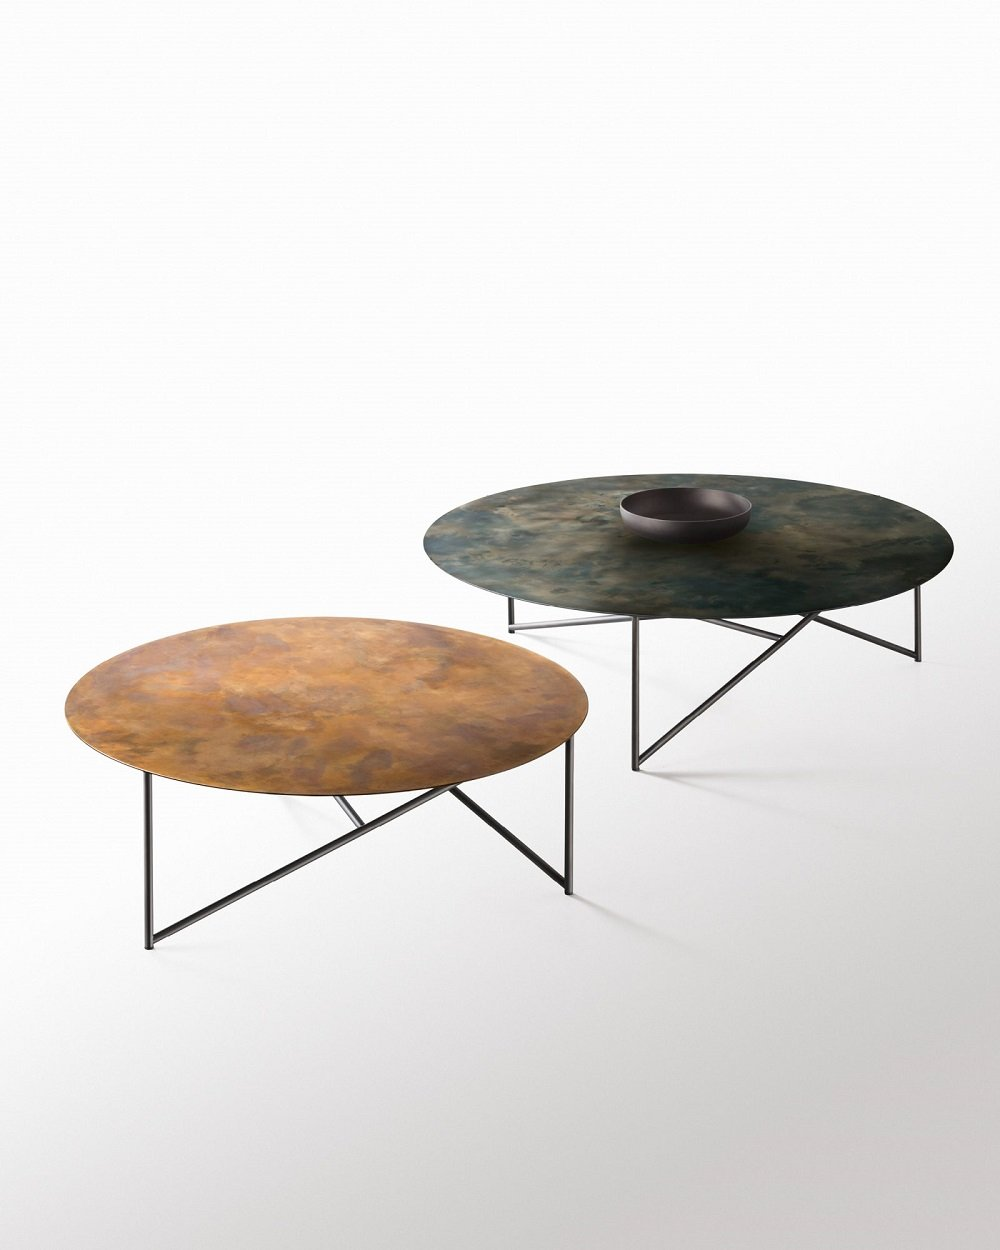 Parsec Coffee Table from De Castelli, designed by Emilio Nanni